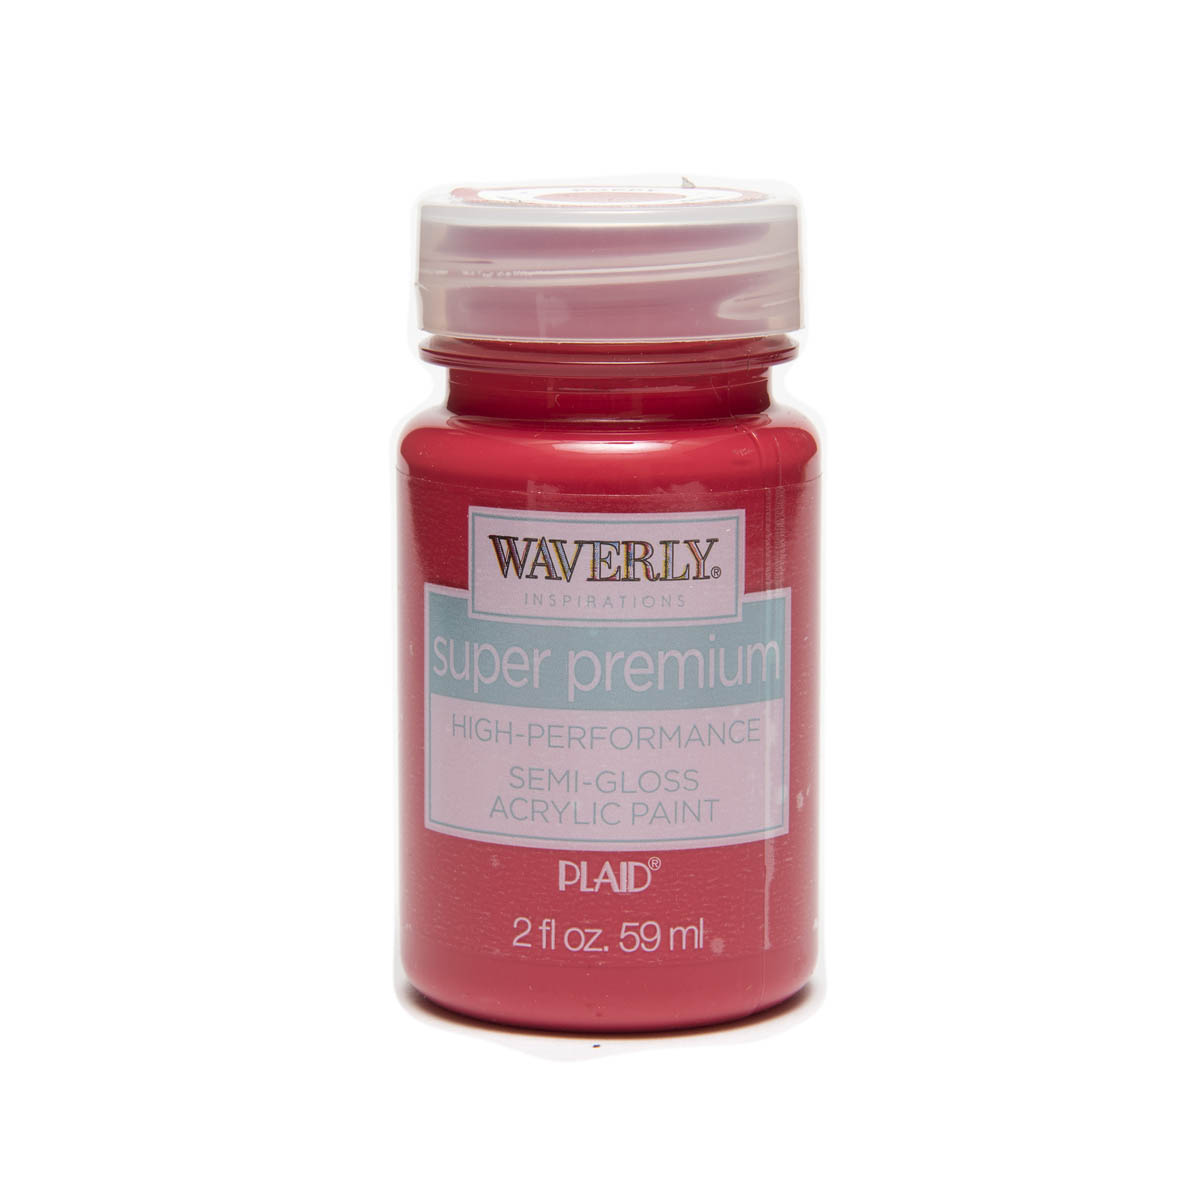 Waverly ® Inspirations Super Premium Semi-Gloss Acrylic Paint - Poppy, 2 oz. - 60613E